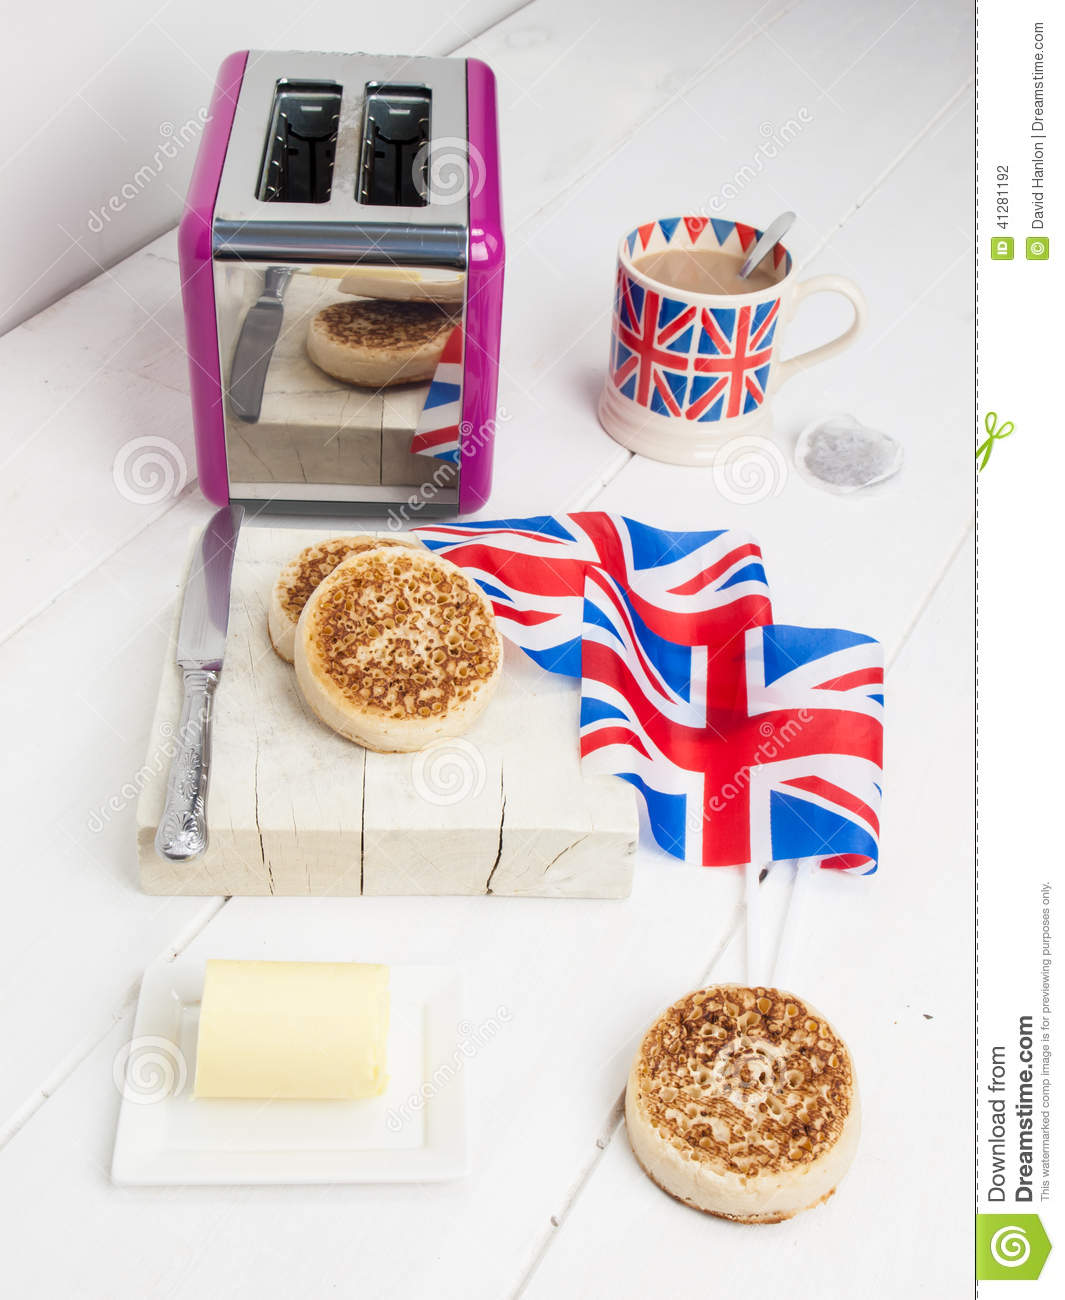 English crumpets with butter